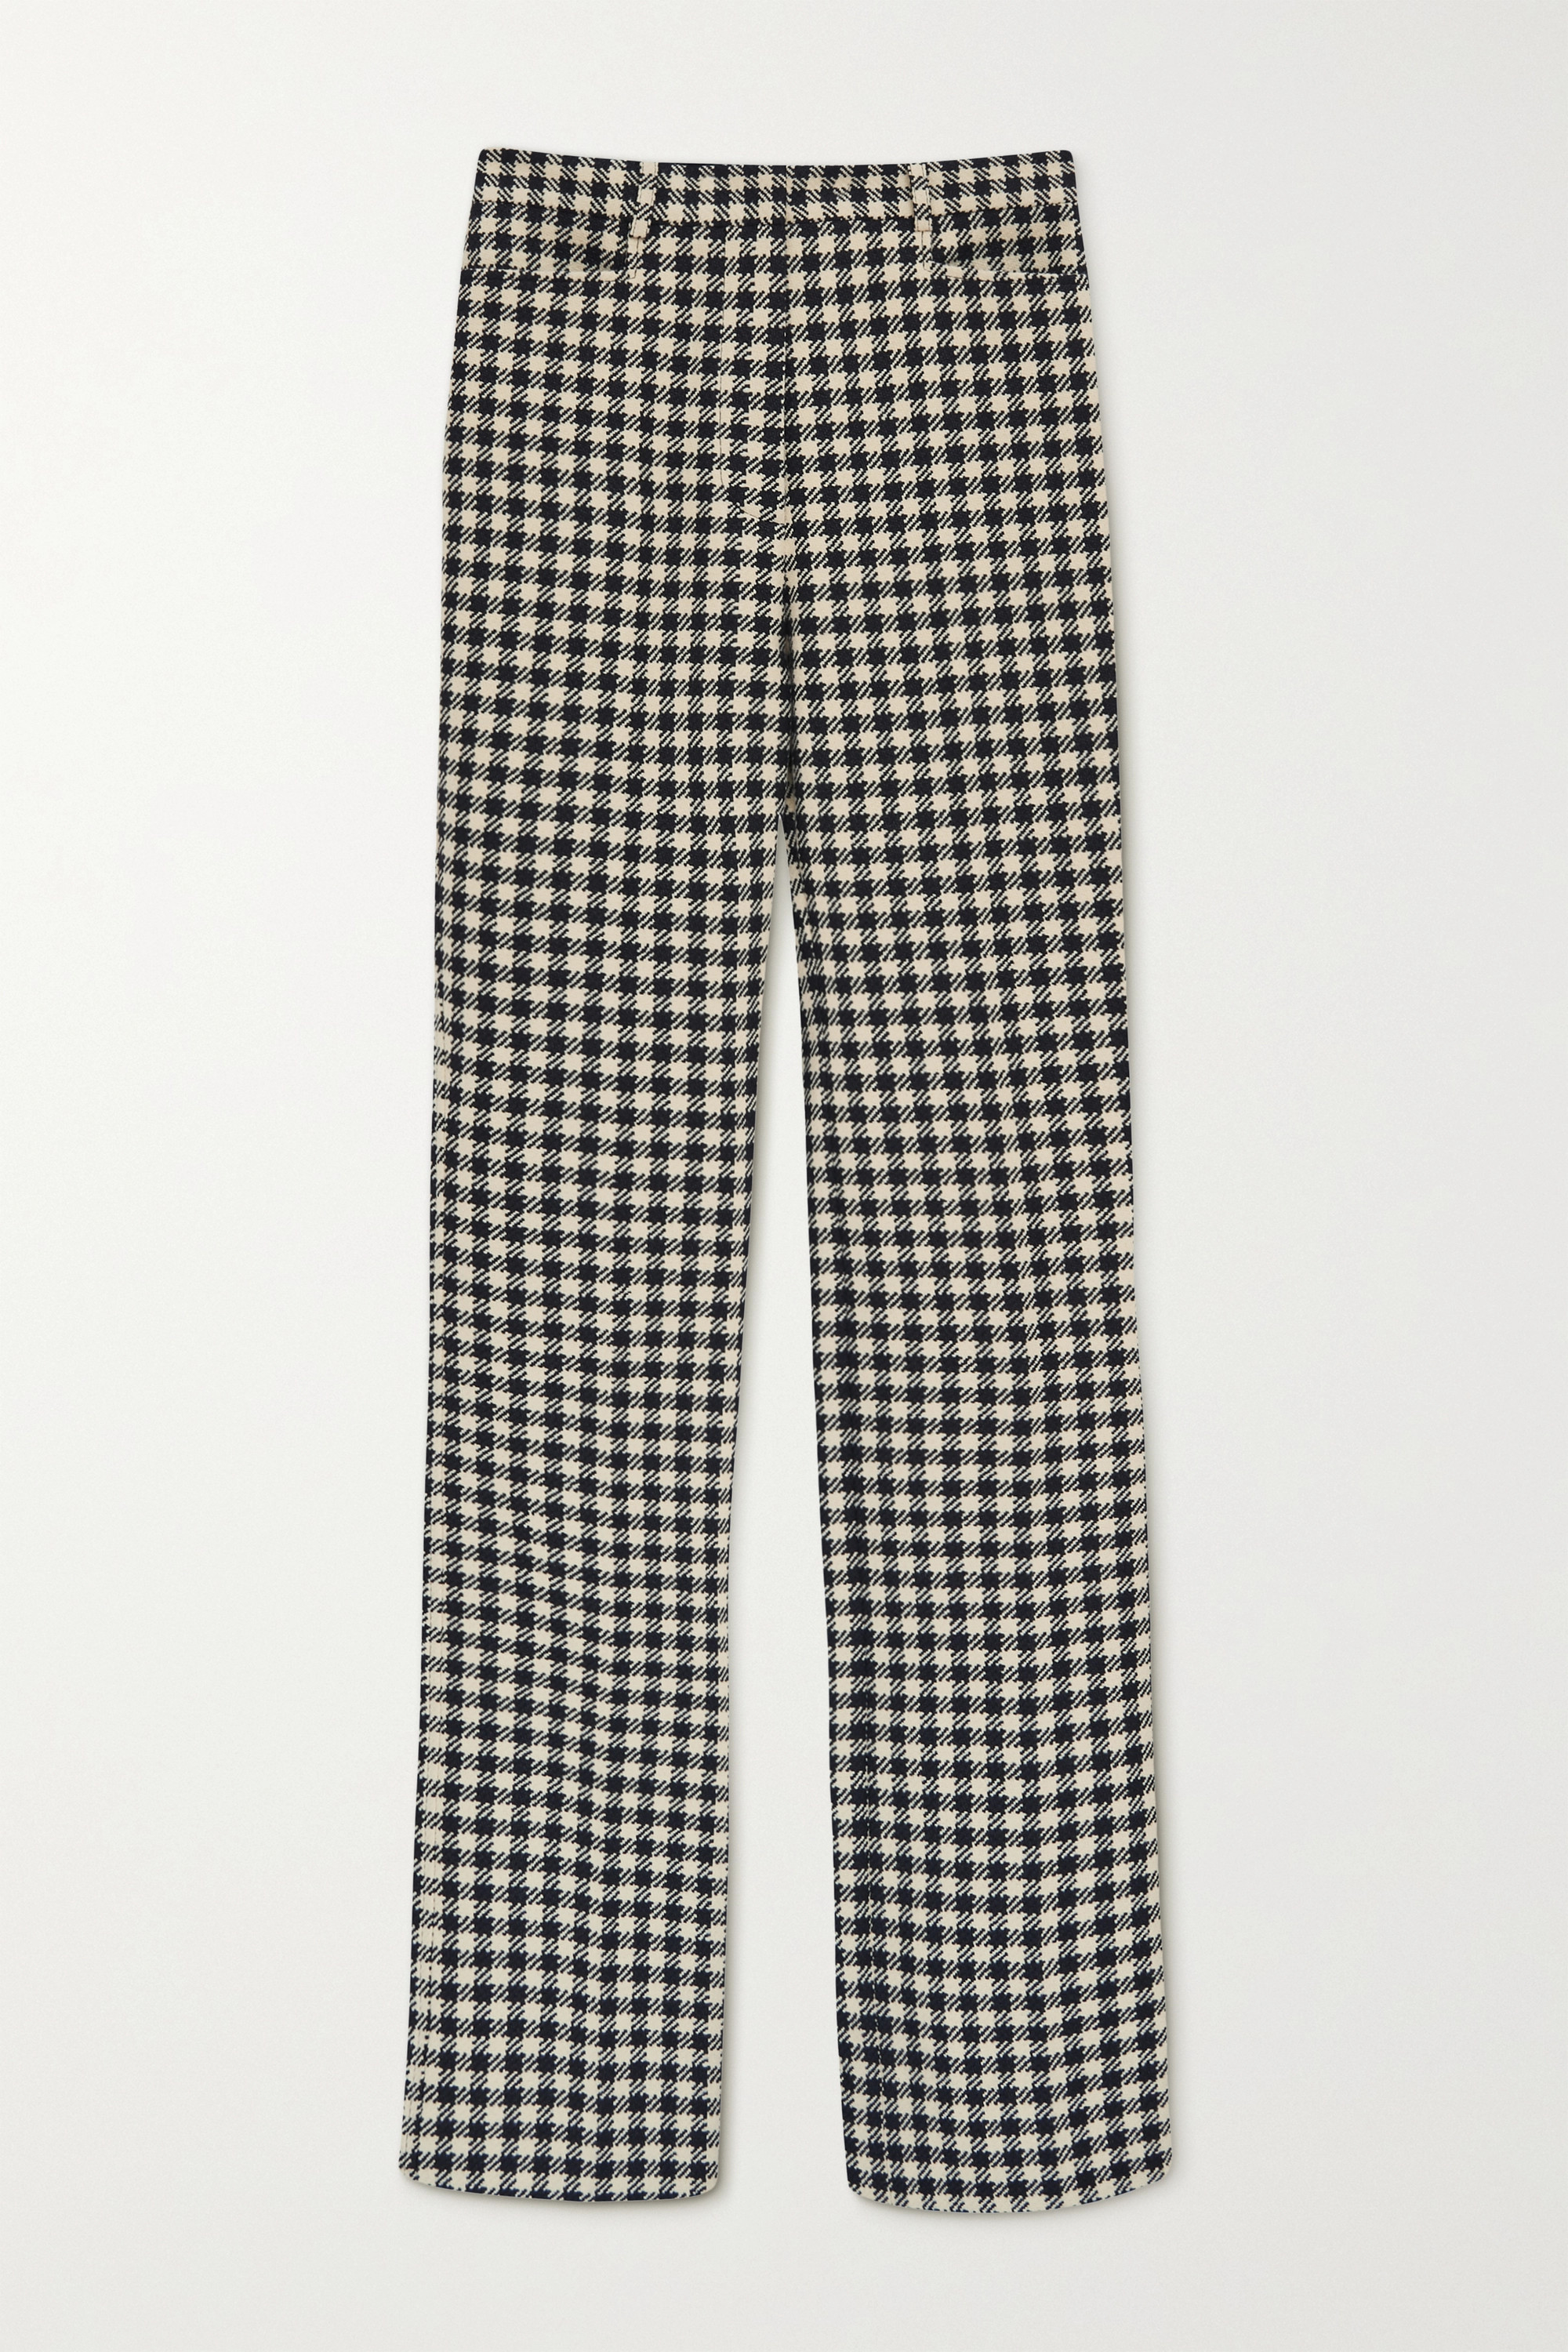 Victoria Beckham Checked woven flared pants